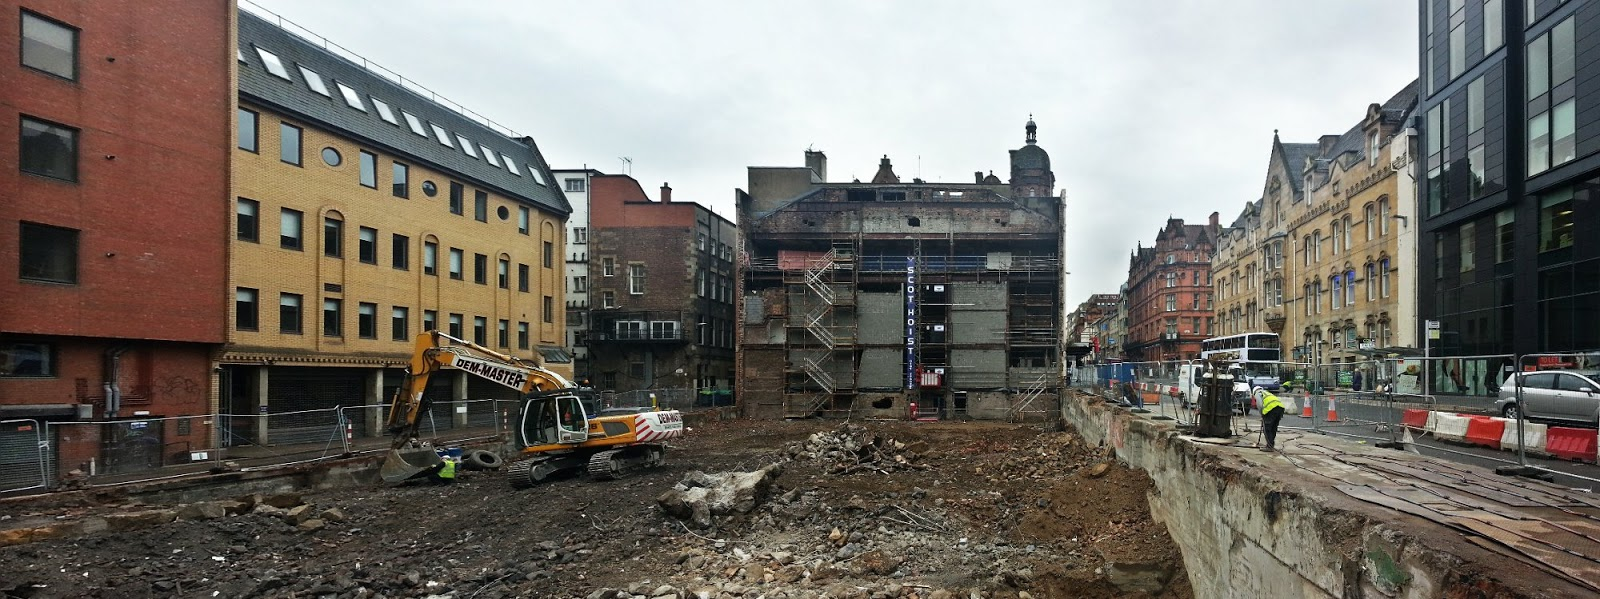 Odeon Cinema Demolished